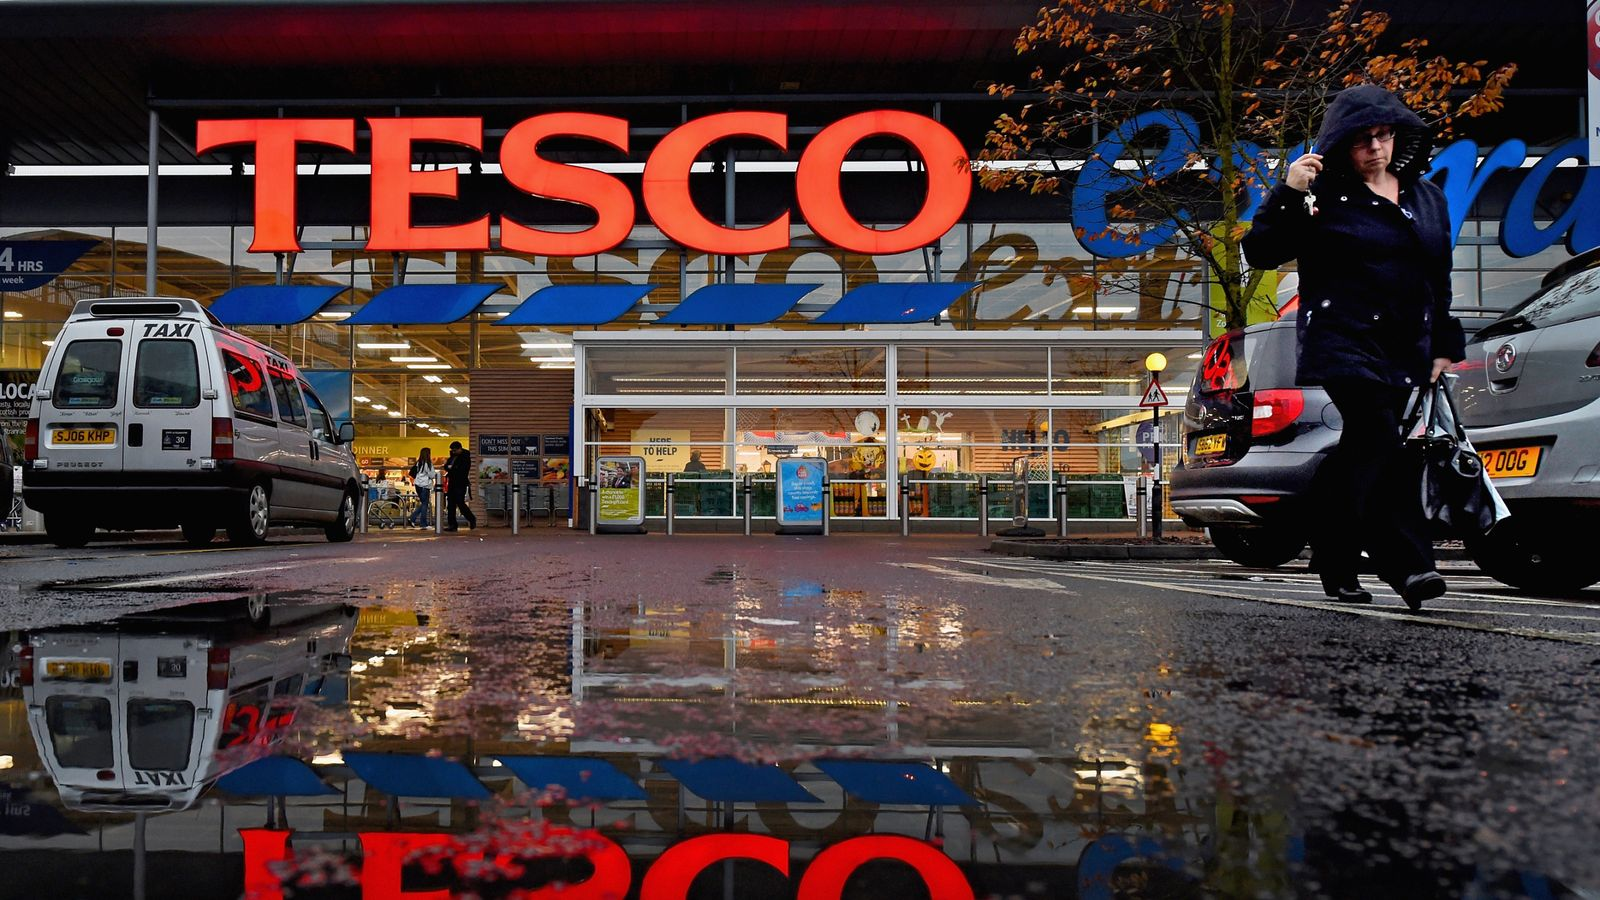 Tesco puts 1,700 jobs at risk in shake-up